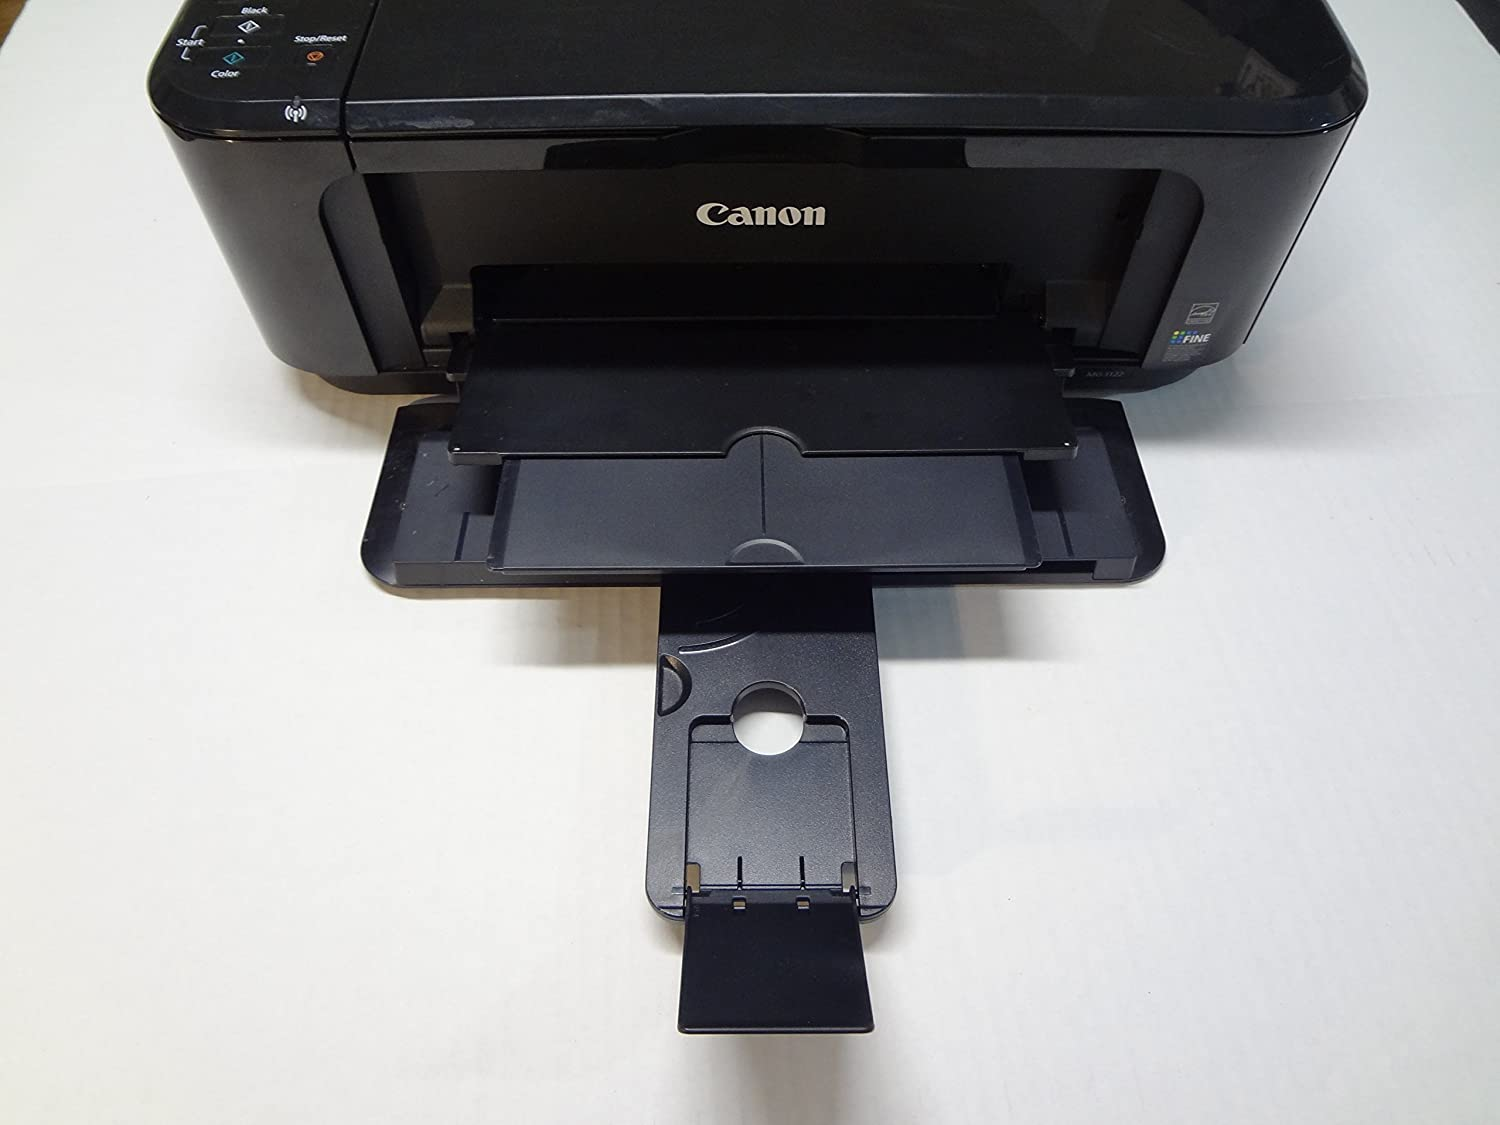 CANON PIXMA MG3122 PRINTER AIRPRINT WINDOWS 8.1 DRIVERS DOWNLOAD